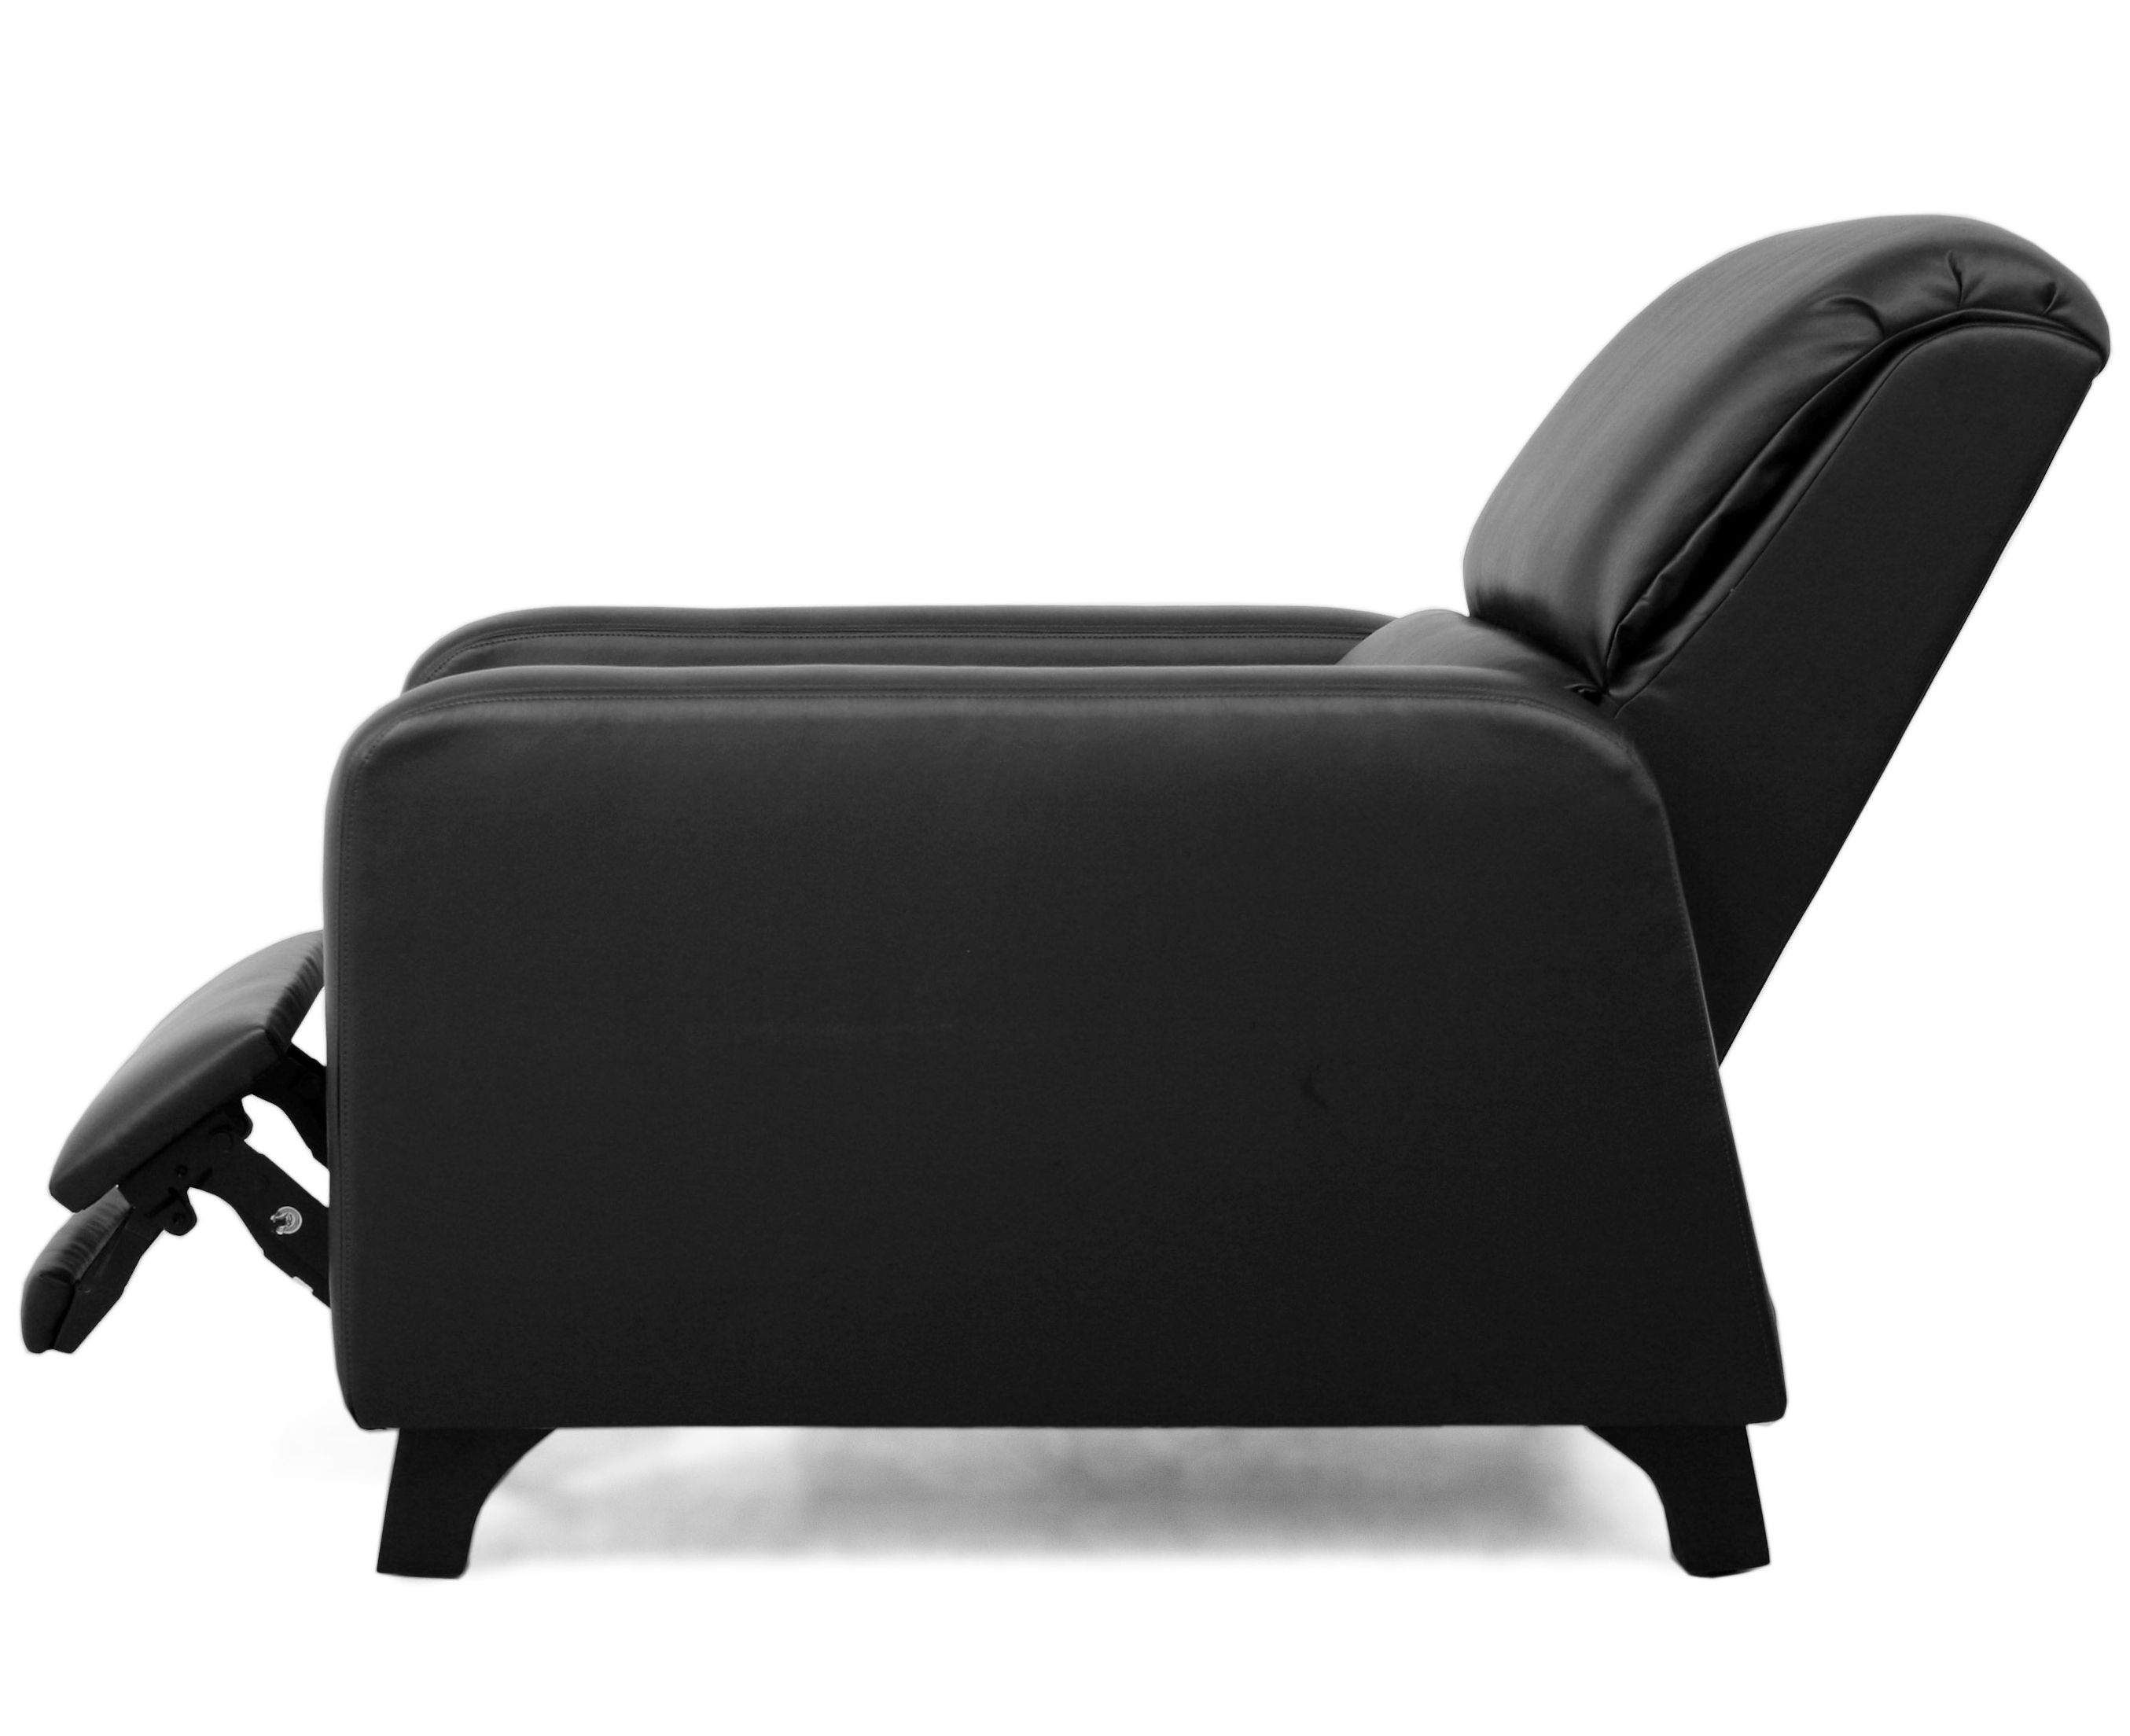 Incredible Heavy Duty Recliners Available Only From A Contract Gamerscity Chair Design For Home Gamerscityorg